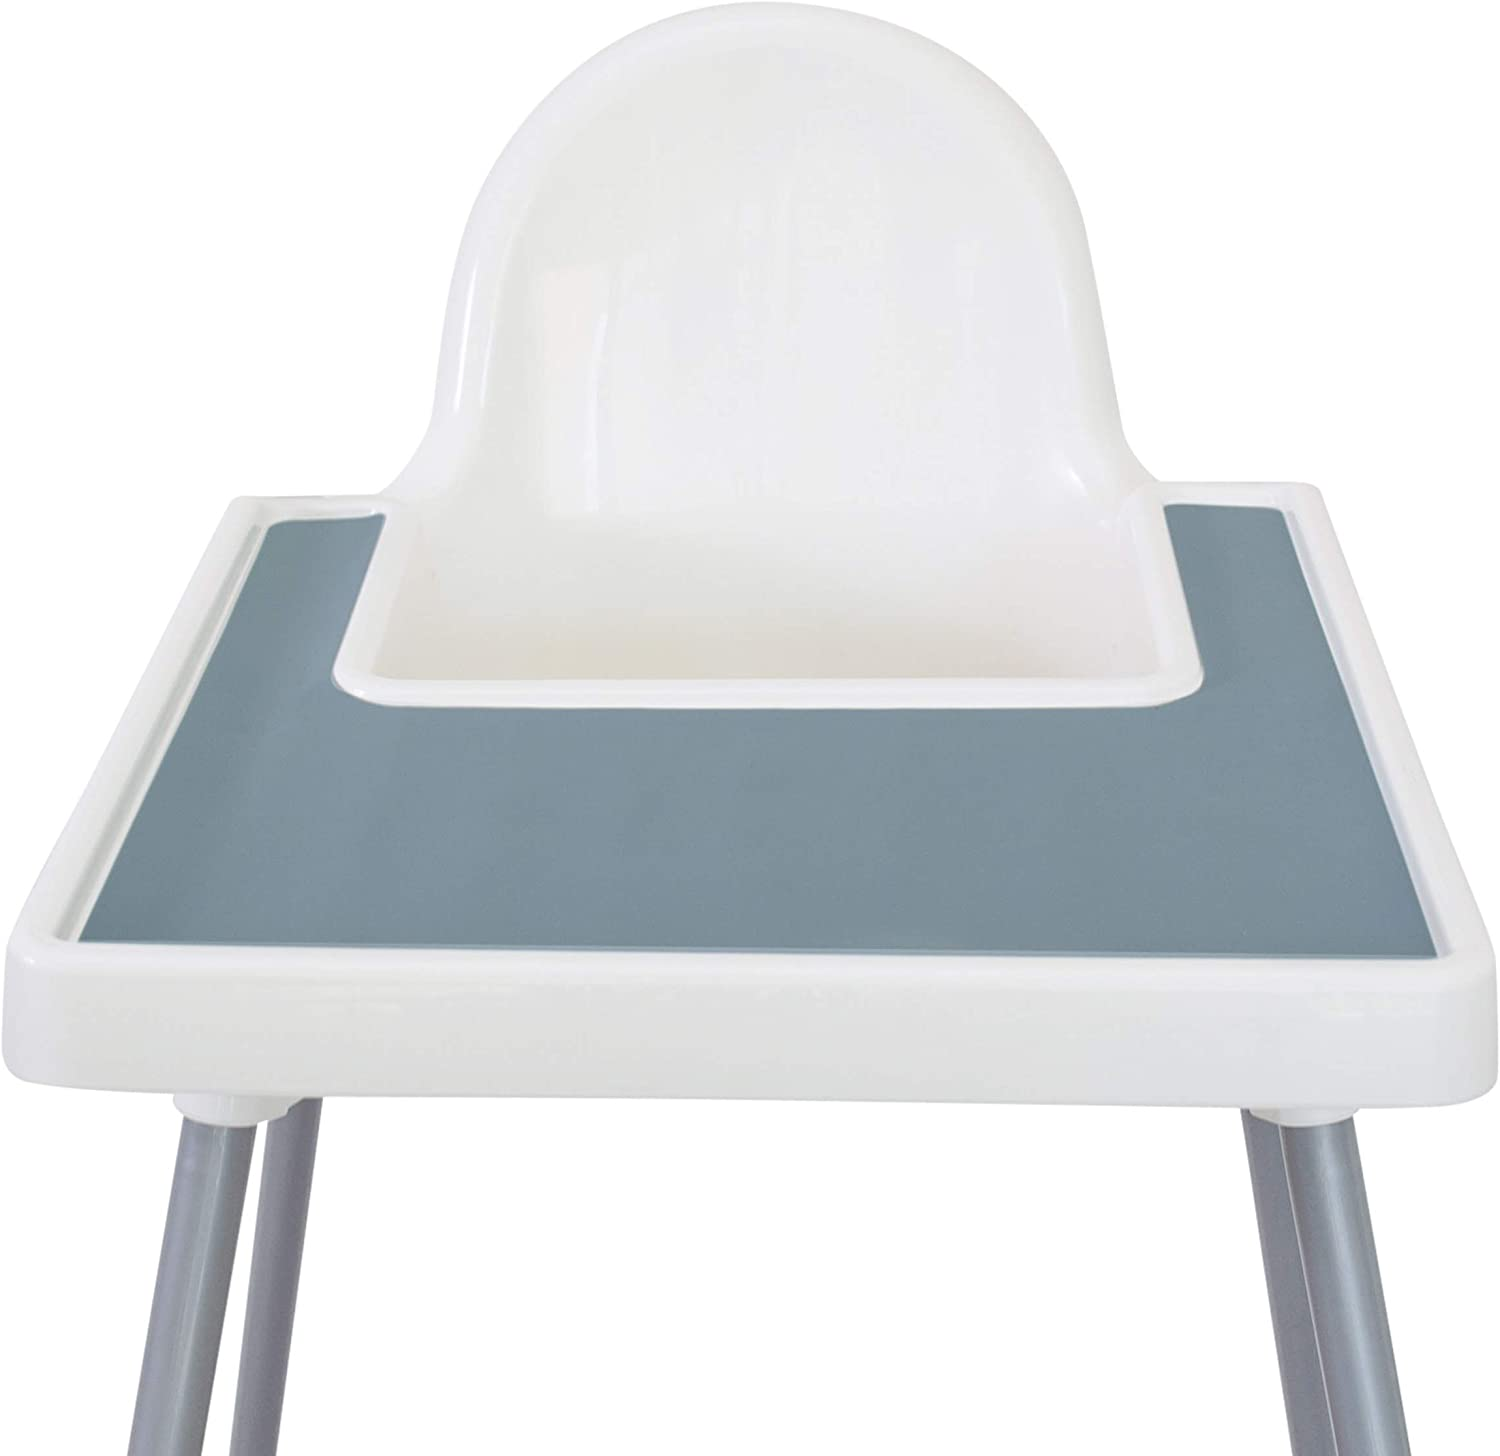 Mango Co. High Chair Placemat for Antilop Baby High Chair - BPA Free, Dishwasher Safe, Silicone Placemats - Finger Foods Placemat for Toddler and Baby (Ether Blue)